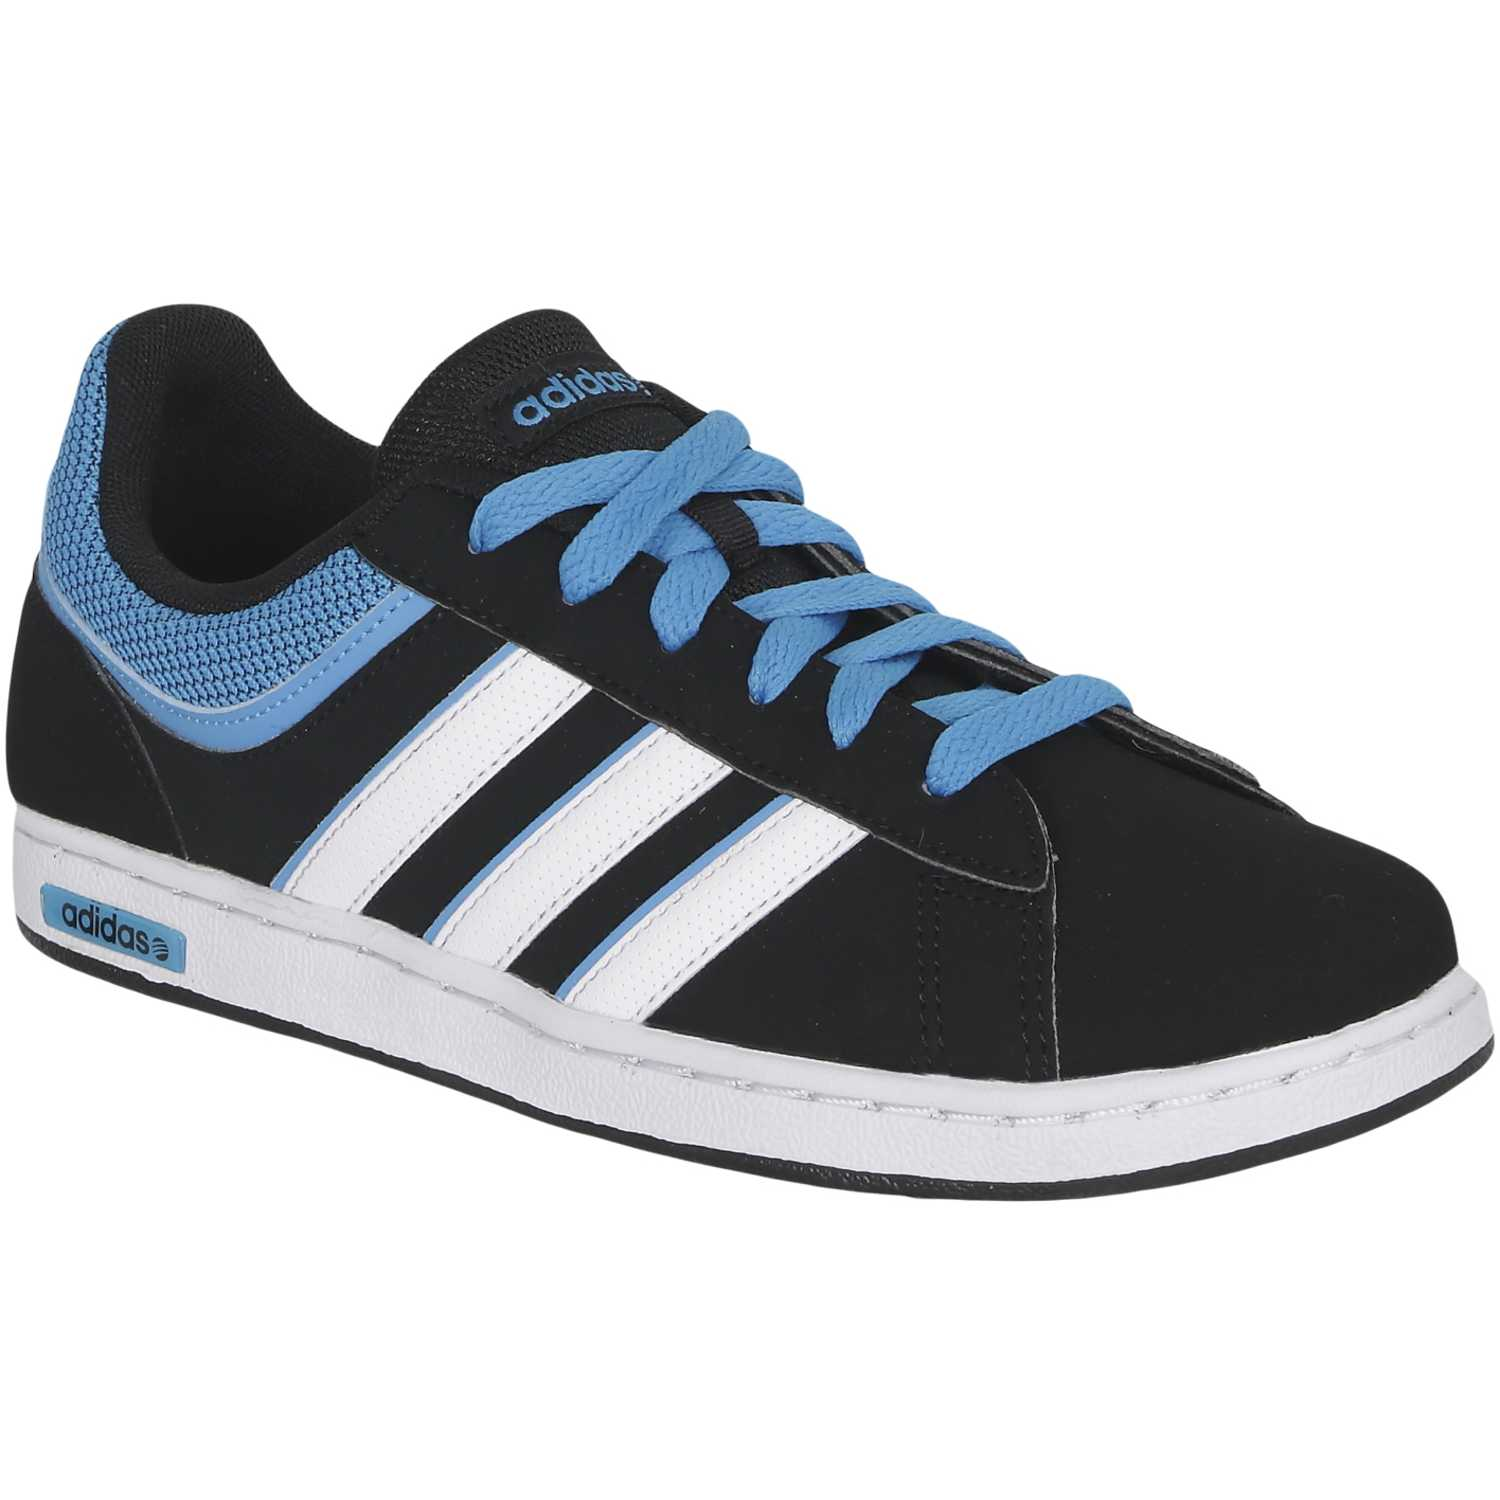 super popular 9db1b 51897 spain zapatilla de jovencito adidas neo negro derby set k e1ae8 9b275